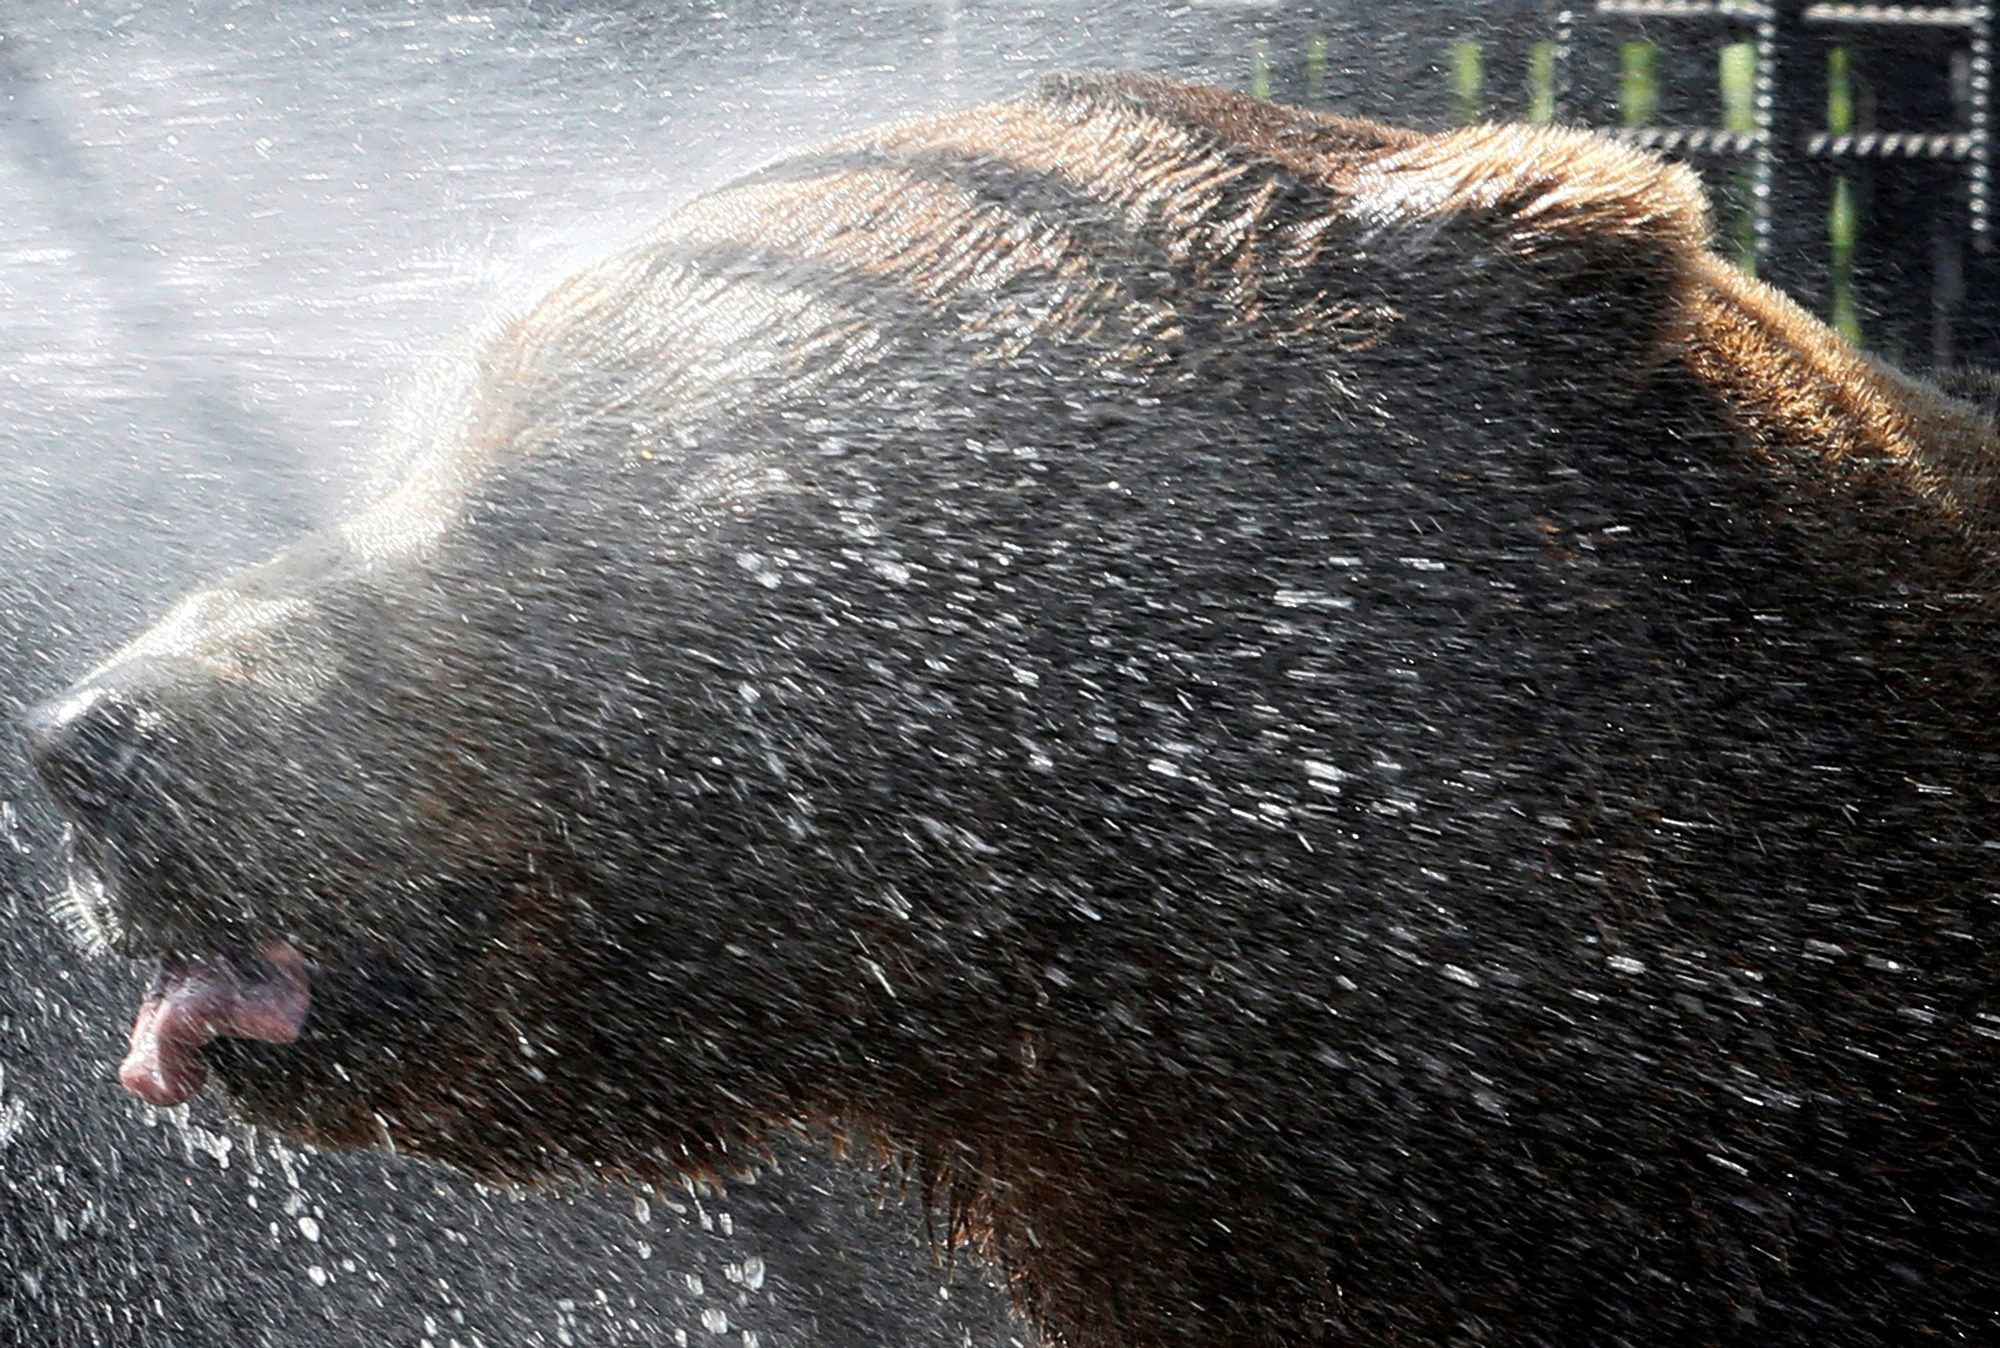 Buyan, a Siberian brown bear, is sprayed with water to cool down at the Royev Ruchey Zoo in the suburb of Krasnoyarsk, Russia.